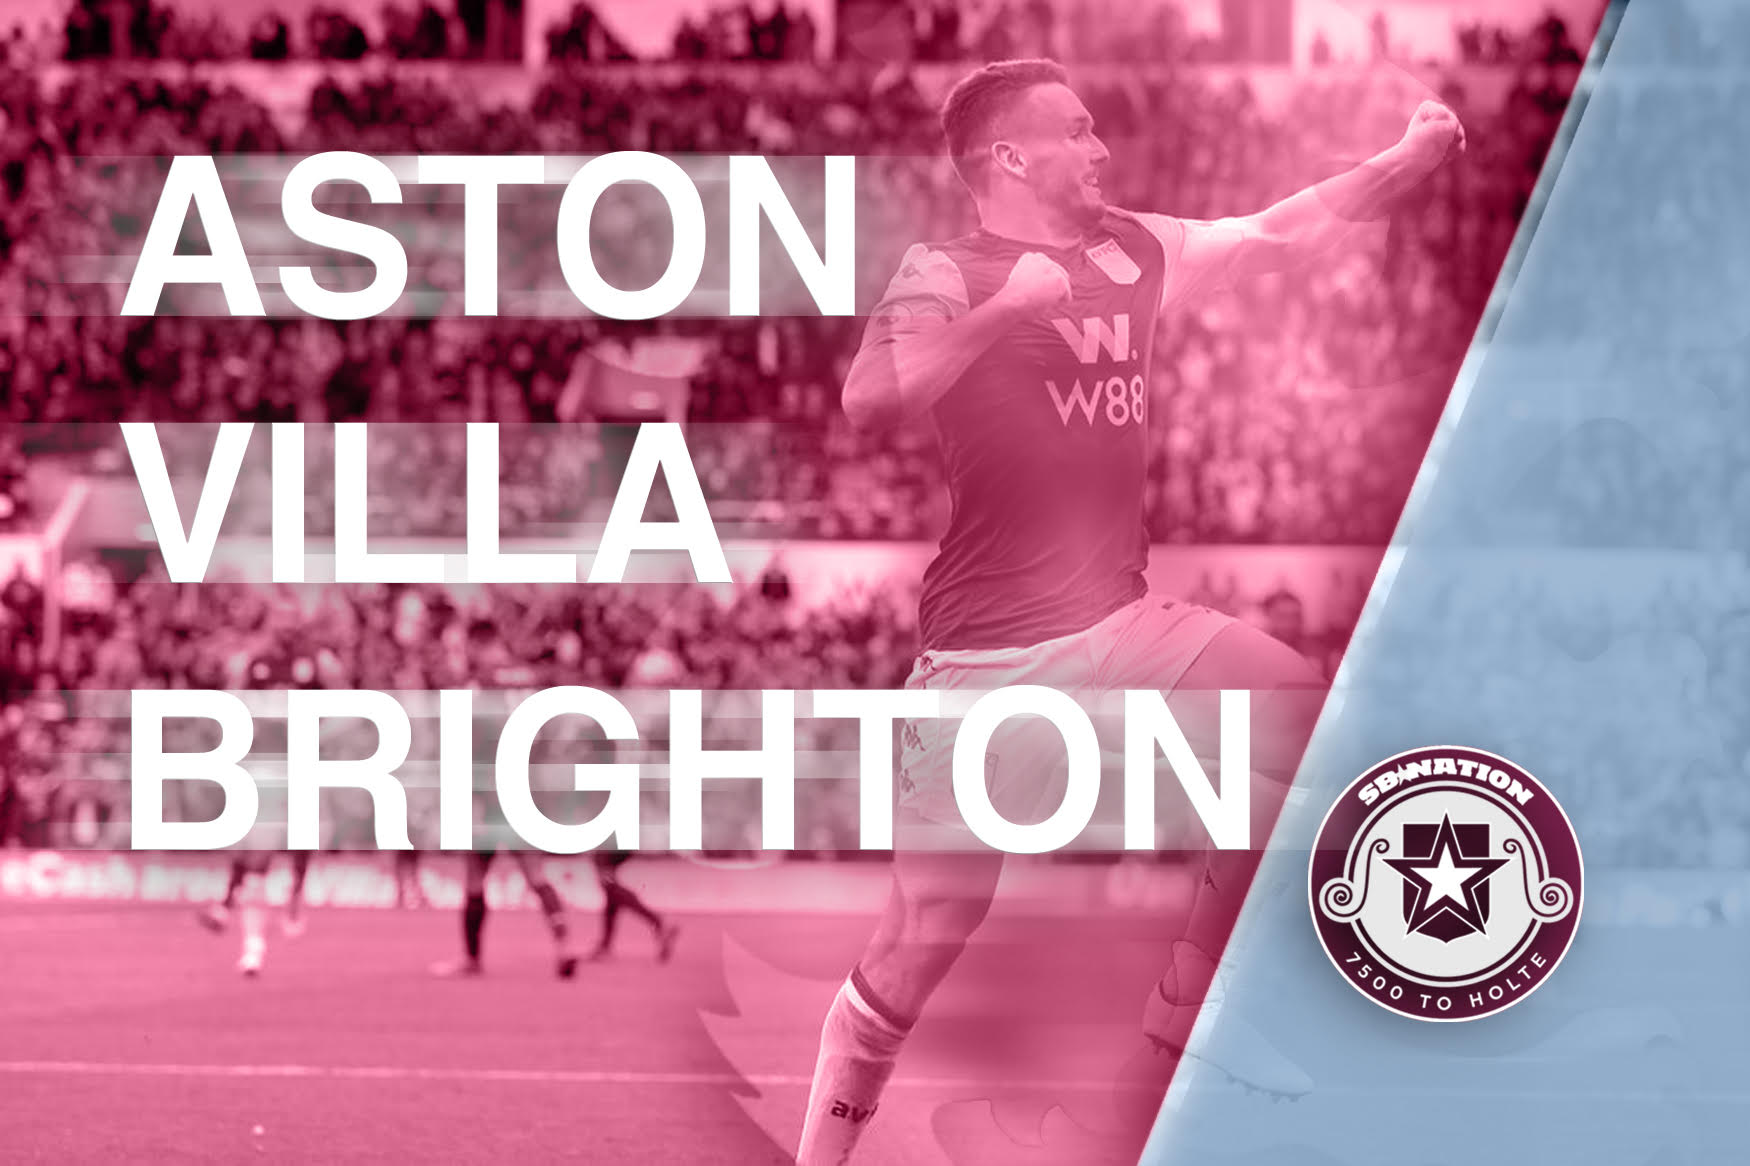 Aston Villa vs Brighton: Preview, live stream info and how to watch Premier League online